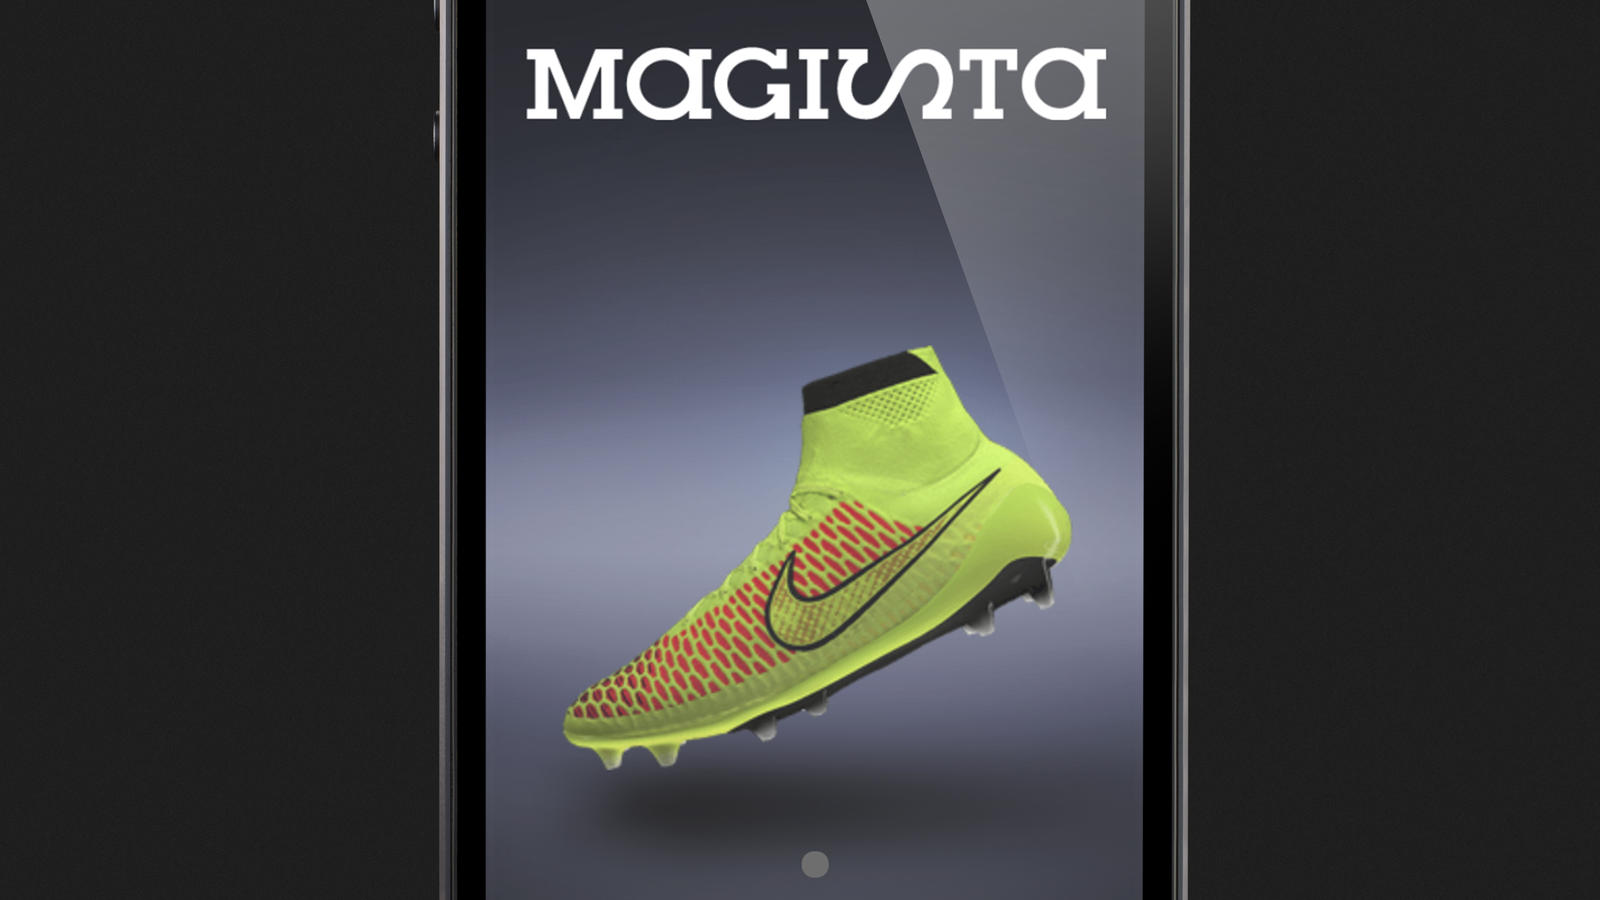 MAGISTA SCREEN SHOT